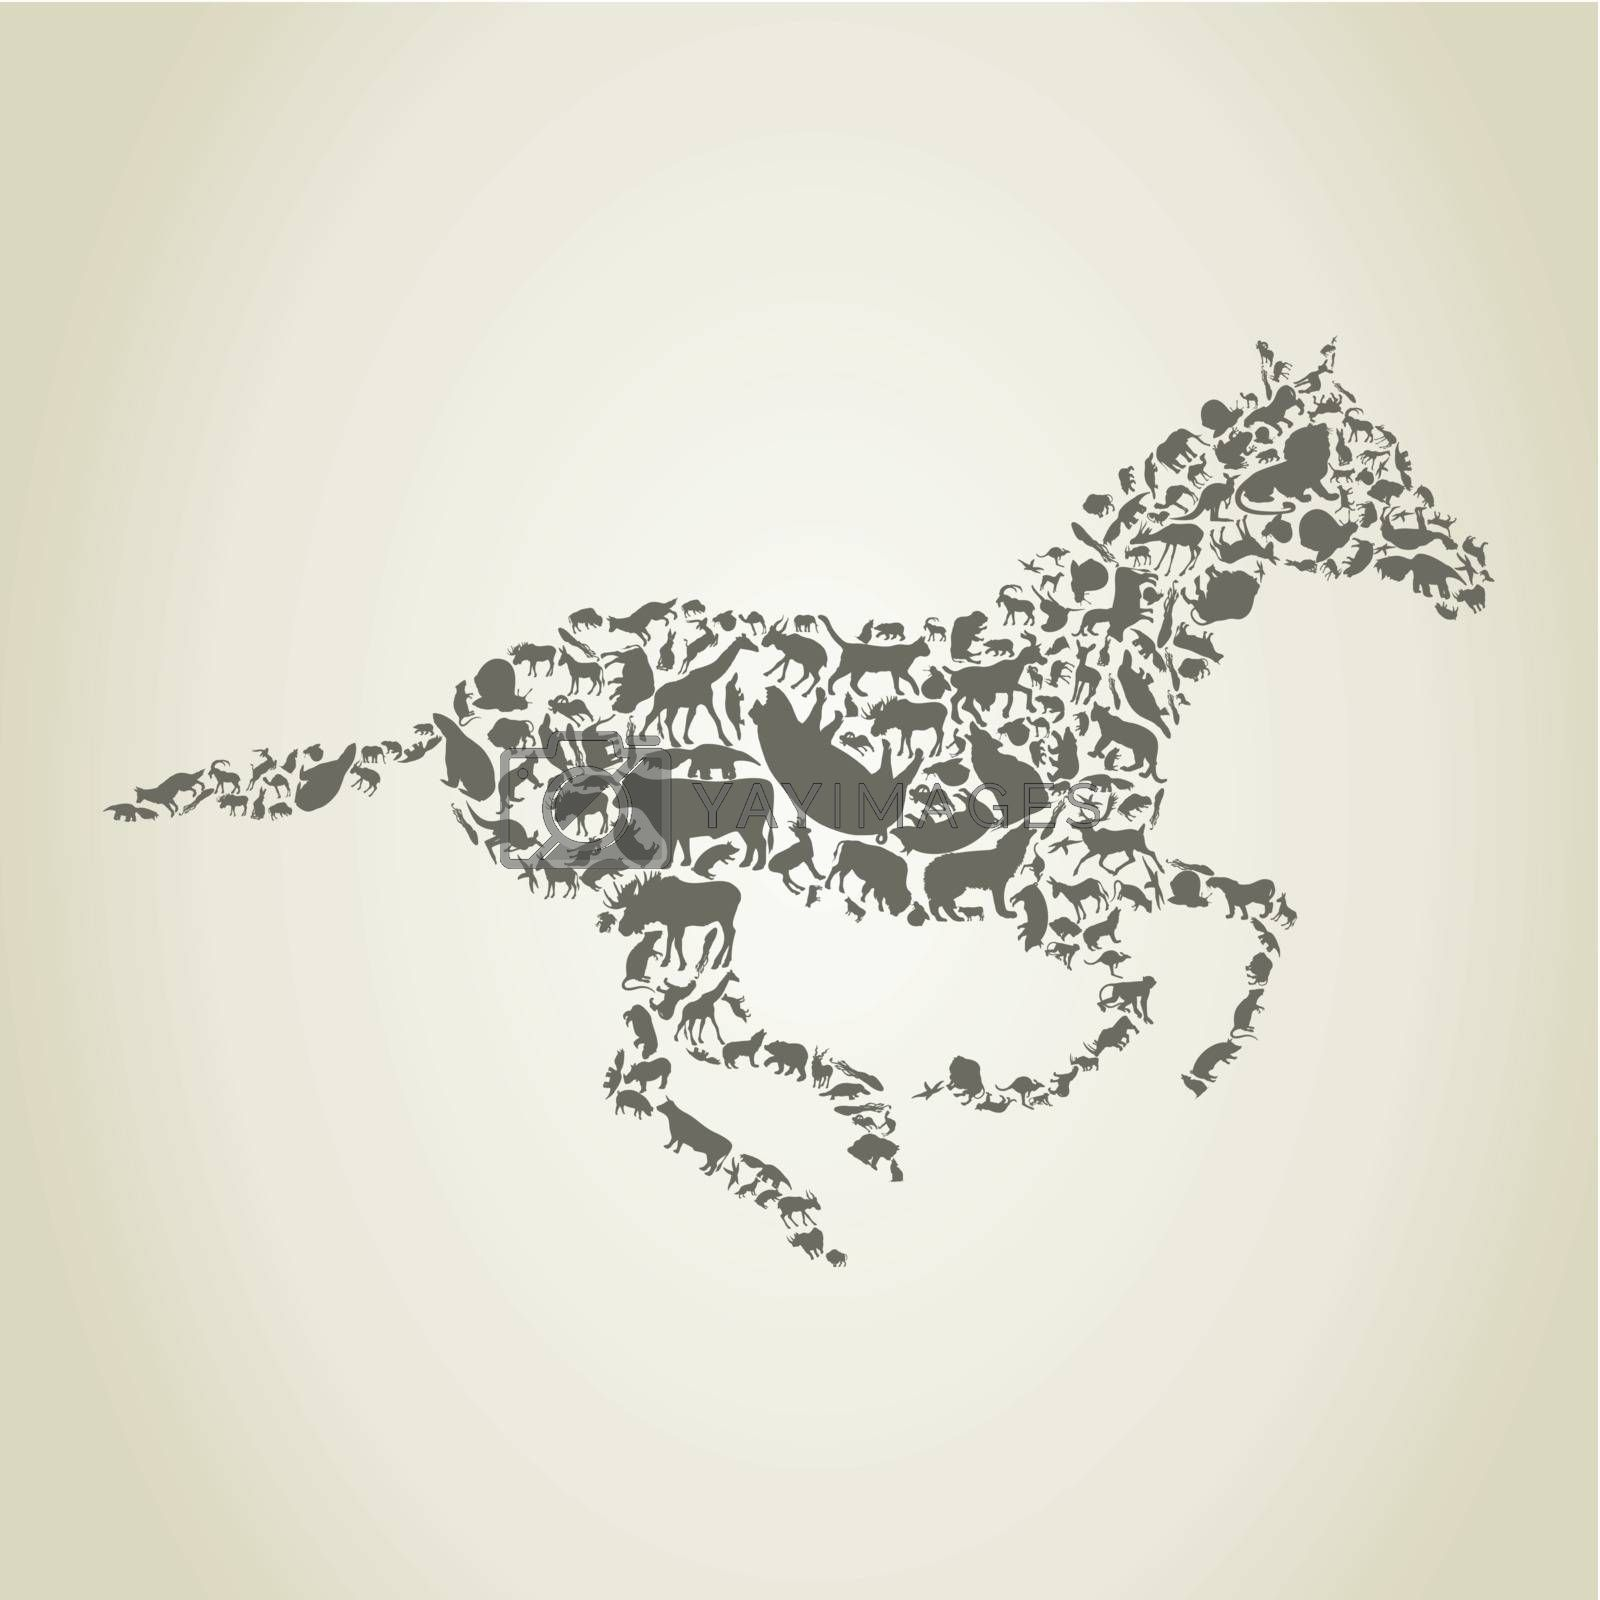 horse consists of animals on a gray background